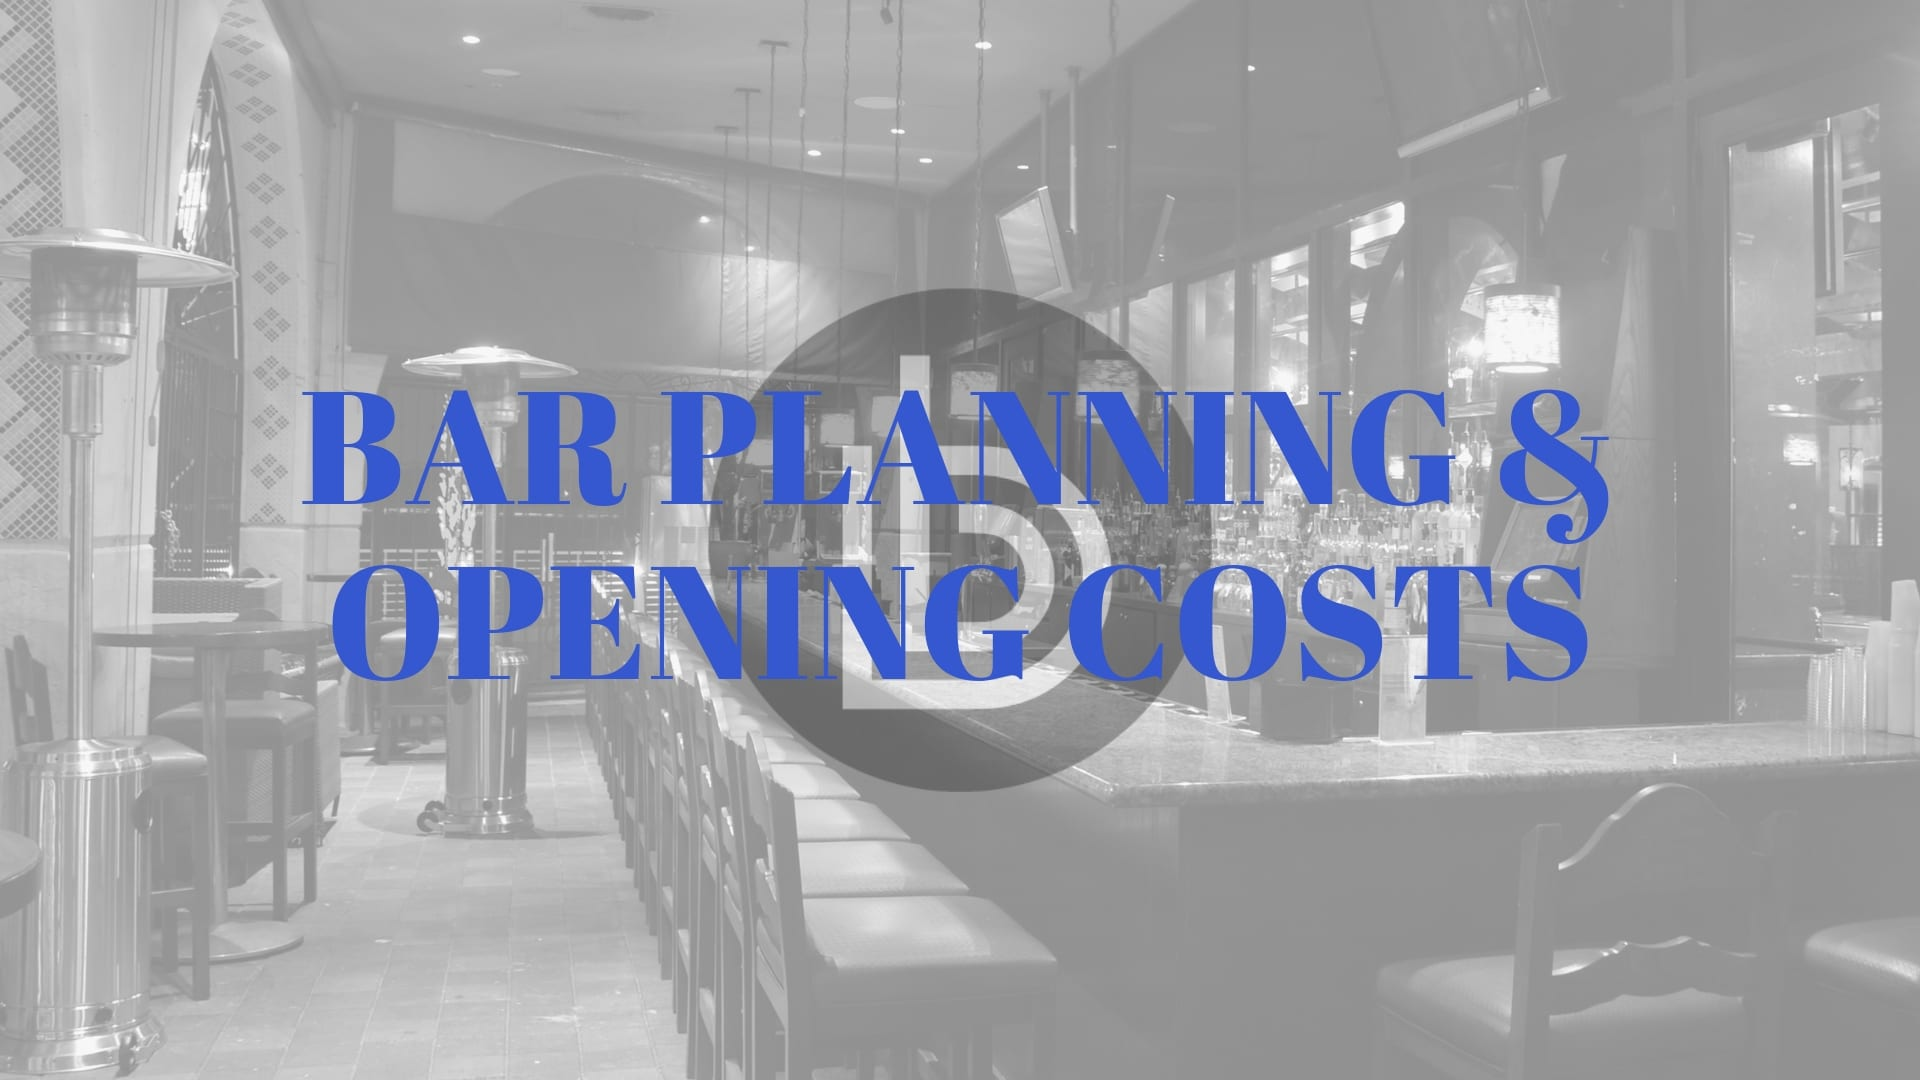 What are the costs of planning and opening a bar?